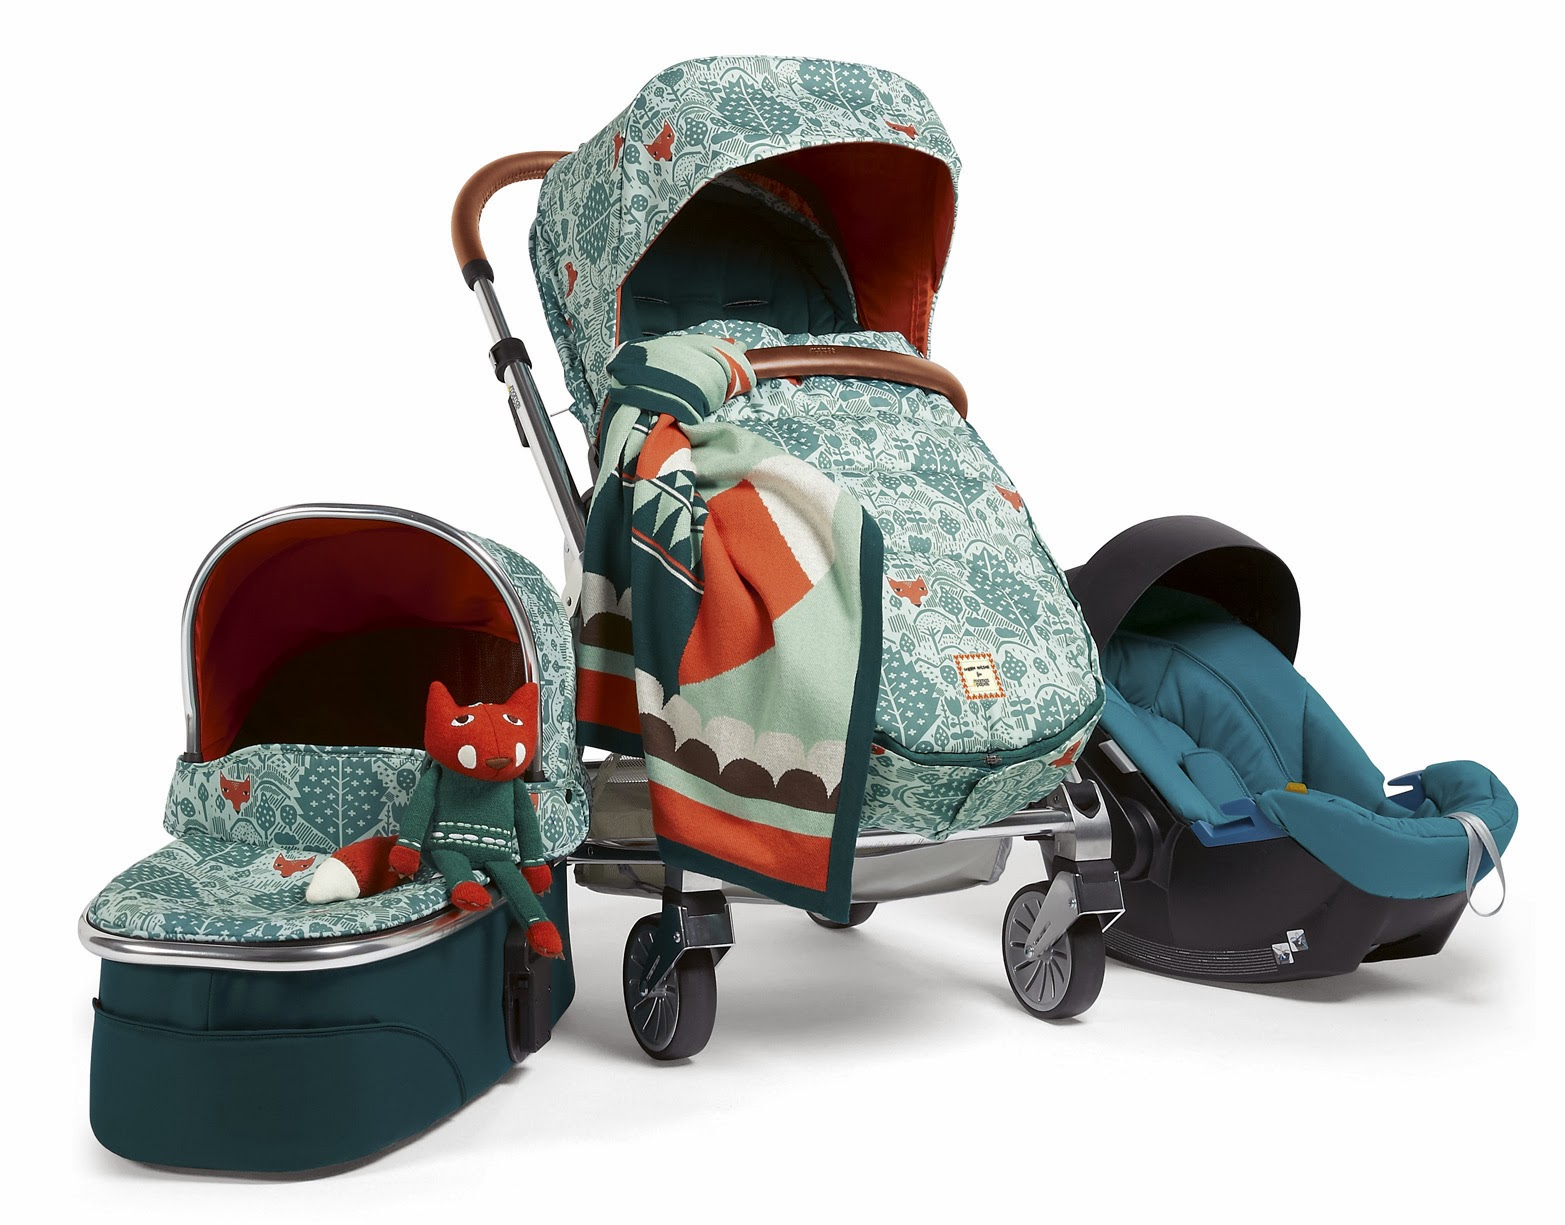 We know what the fox says. And we know his preferred ride: the special-edition stroller from Mamas & Papas